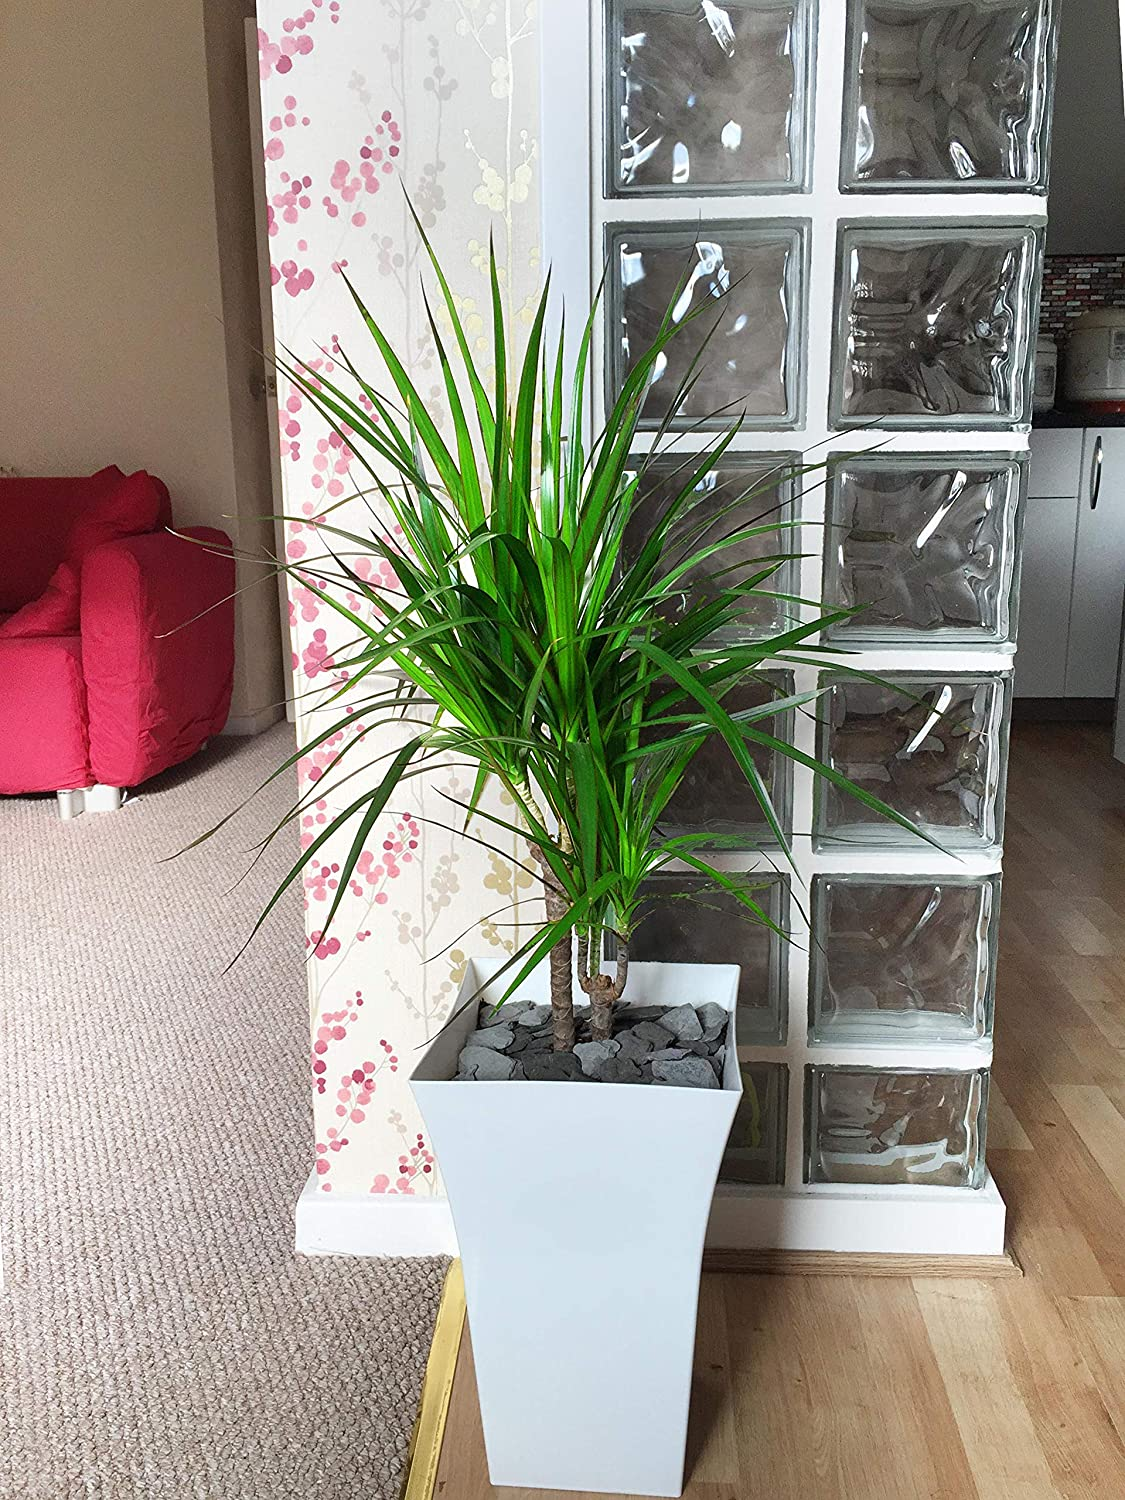 Easy Plants 1 Large Double Dragon Tree in Gloss White Milano Pot - 90/100cm Tall Floor Plant